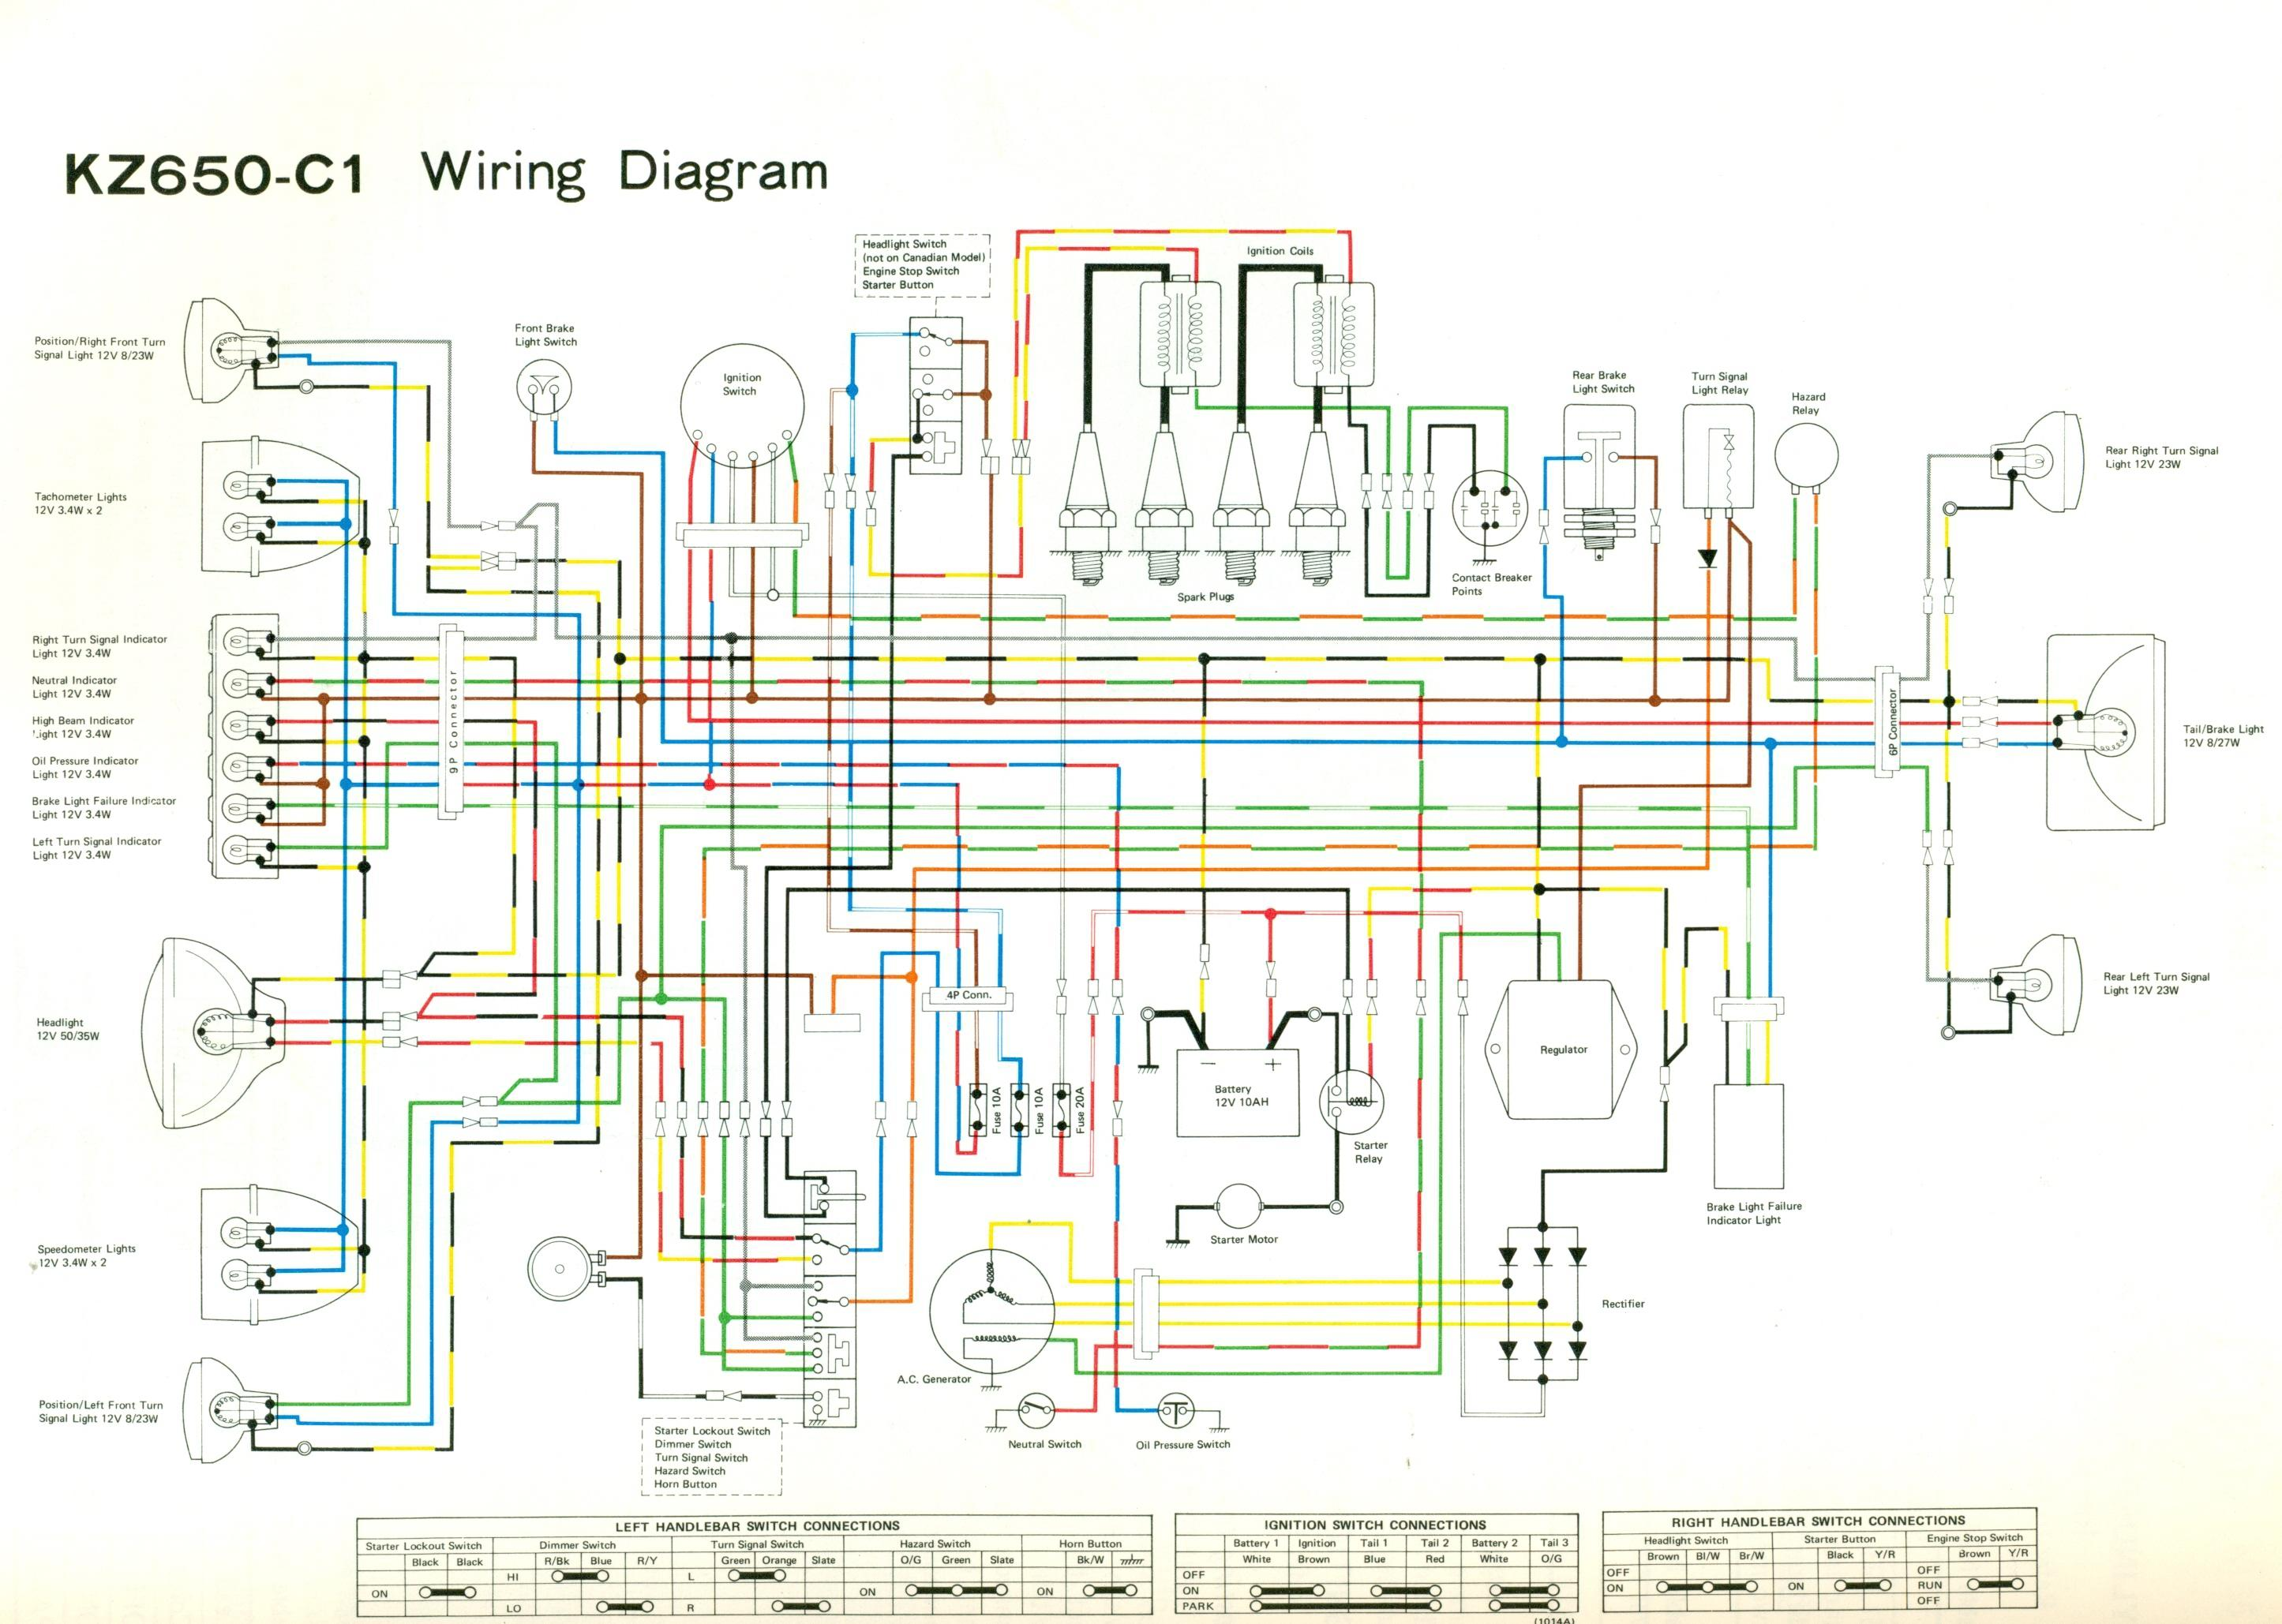 KZ650 C wiring diagrams kawasaki z750 wiring diagram at eliteediting.co